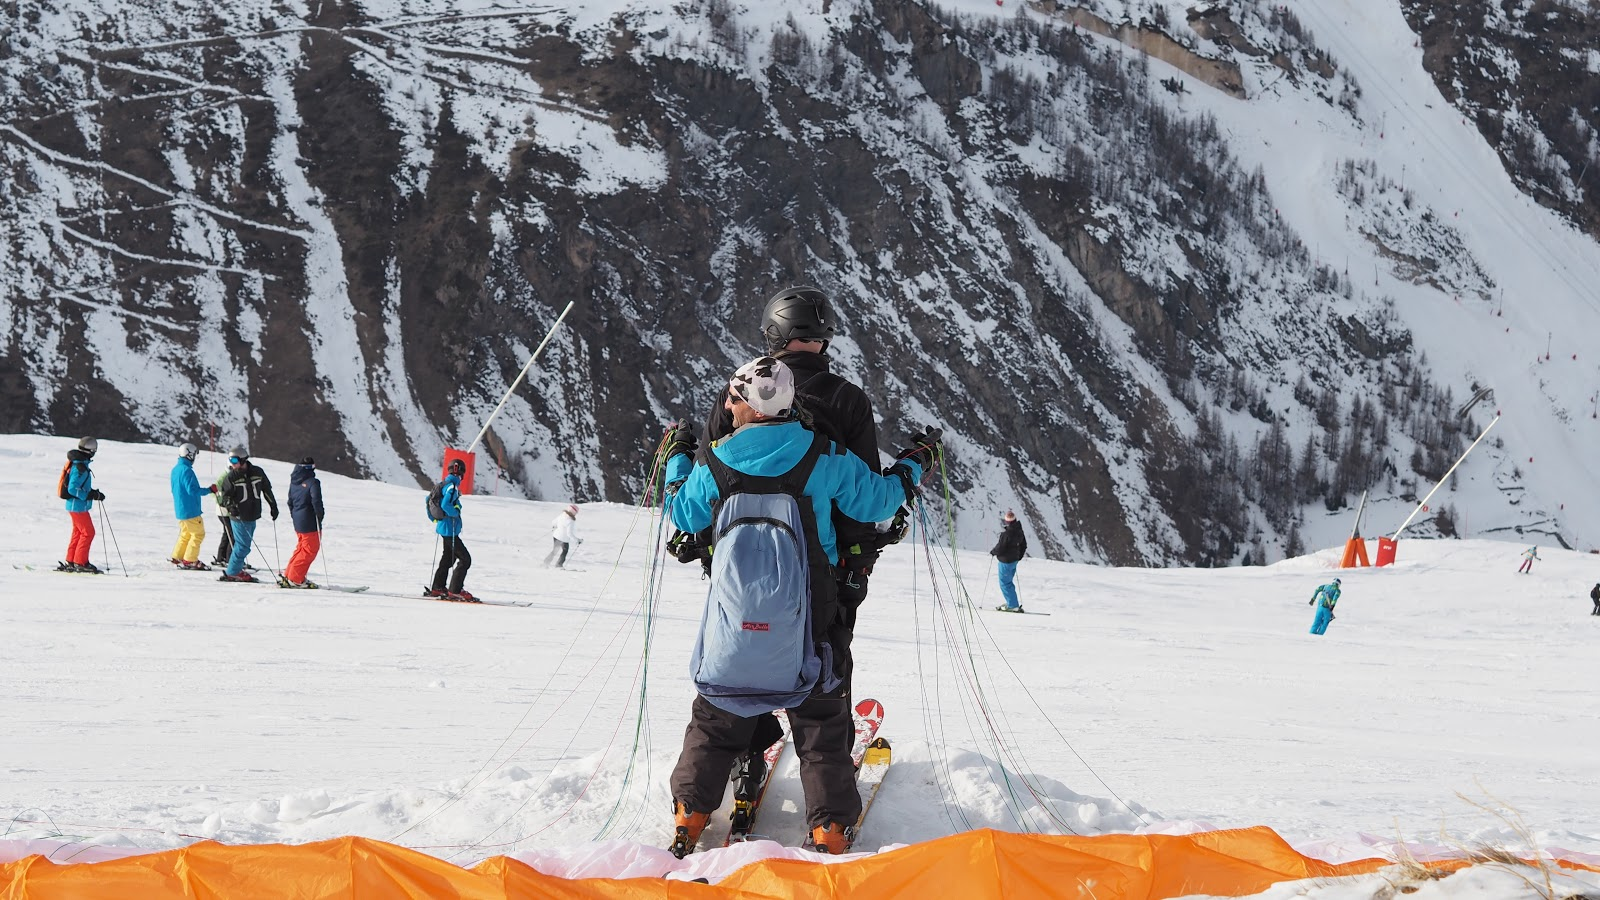 ski parachute on top of a snowy mountain in Val d'isere, France